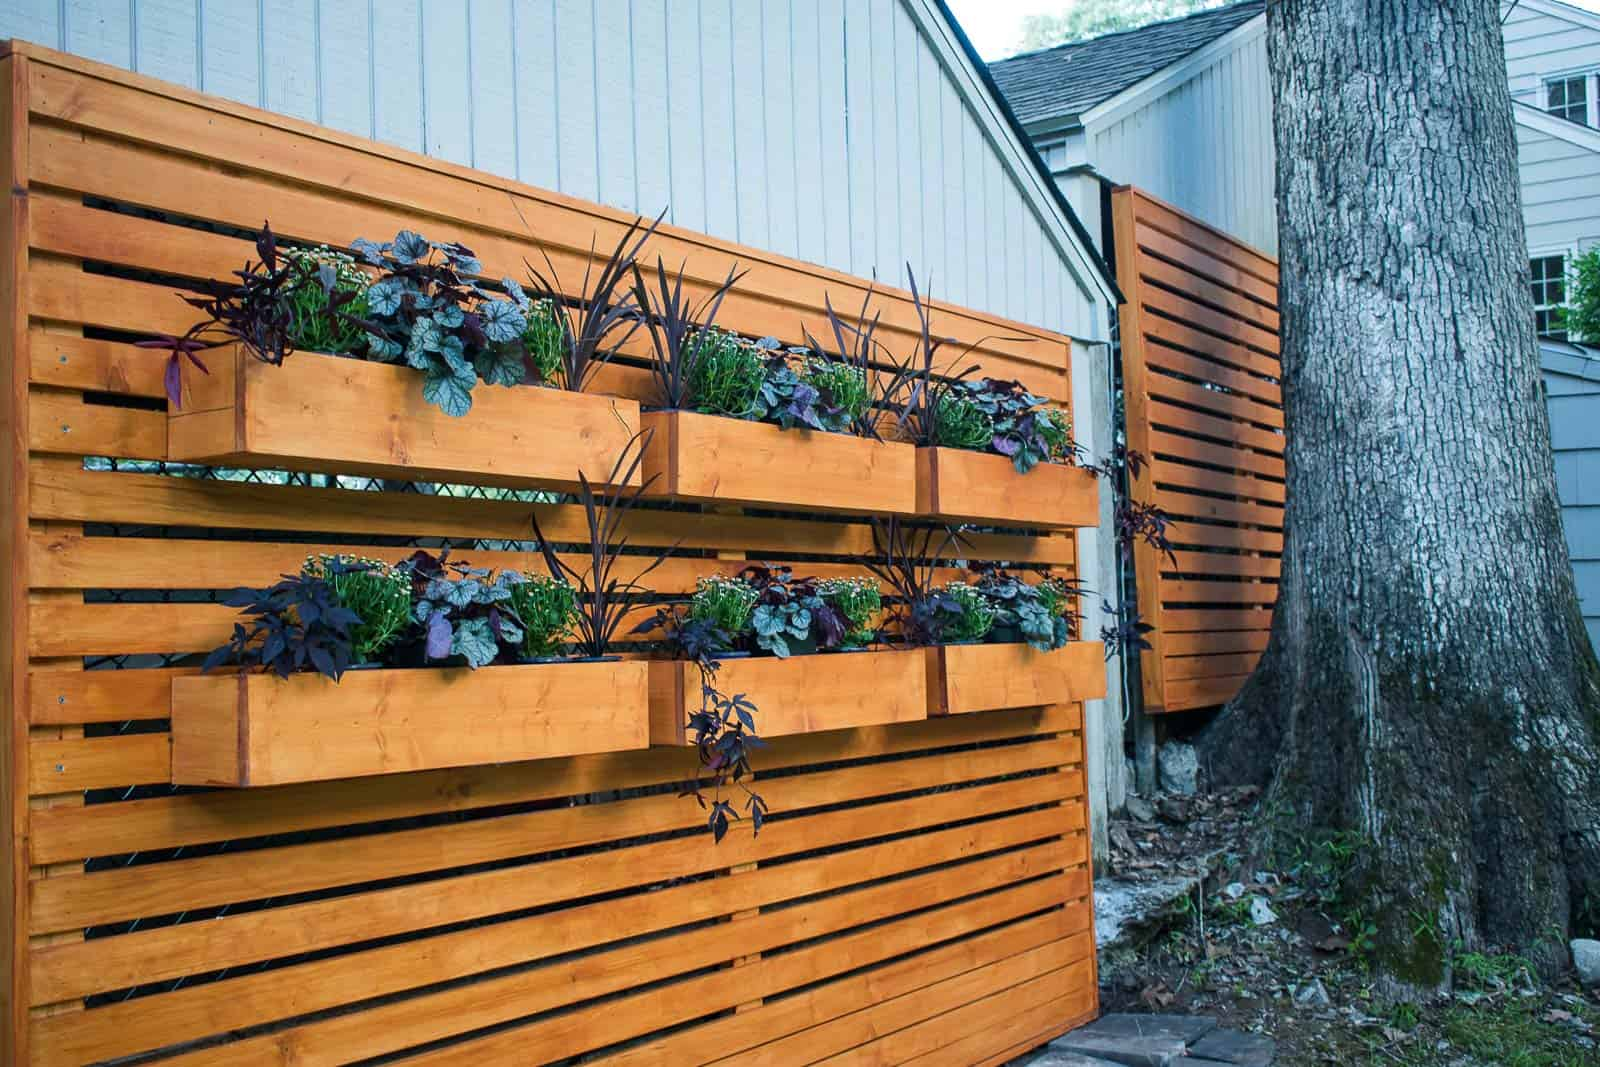 planters mounted on the wooden chain link fence cover